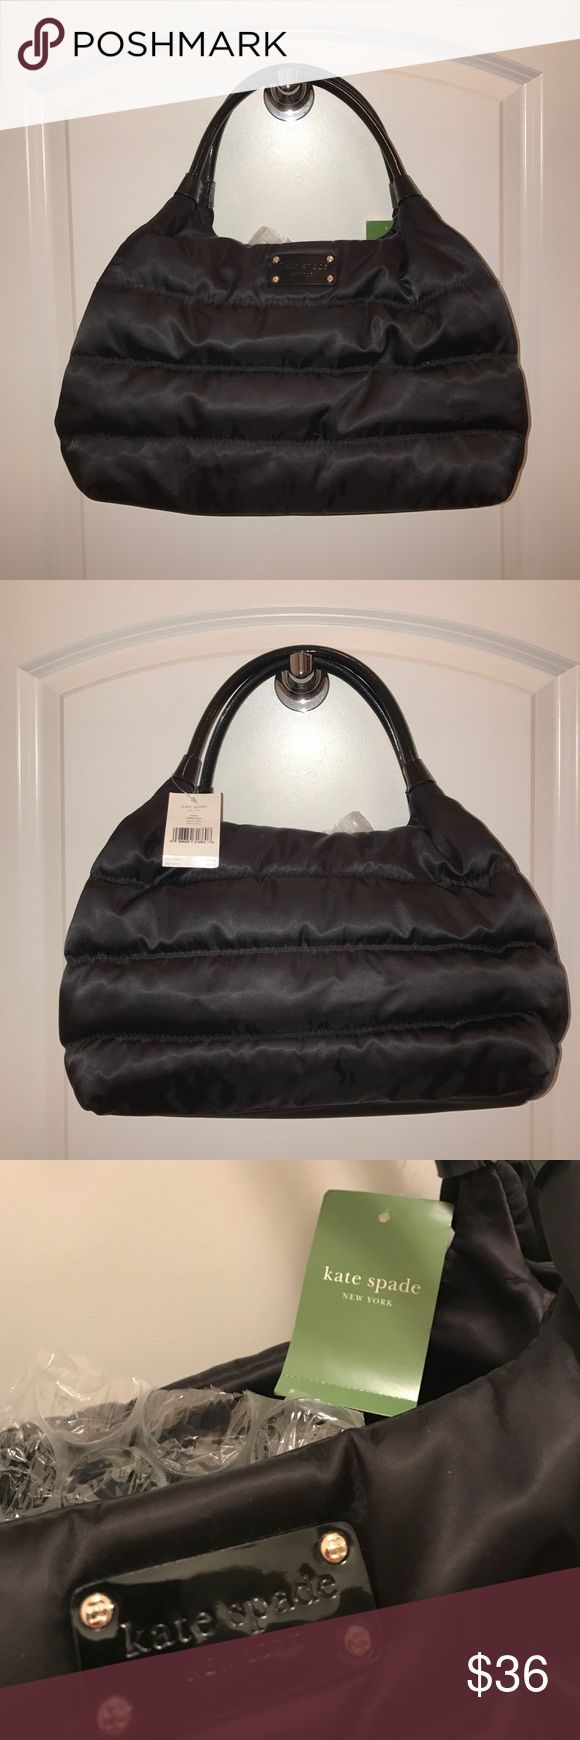 """NWT Kate Spade Alpine Hills Stevie Purse Brand new, never used! Large, authentic, unique quilted nylon bag 💼 15.5"""" x 9"""" x 6"""". MSRP $295 kate spade Bags Totes"""